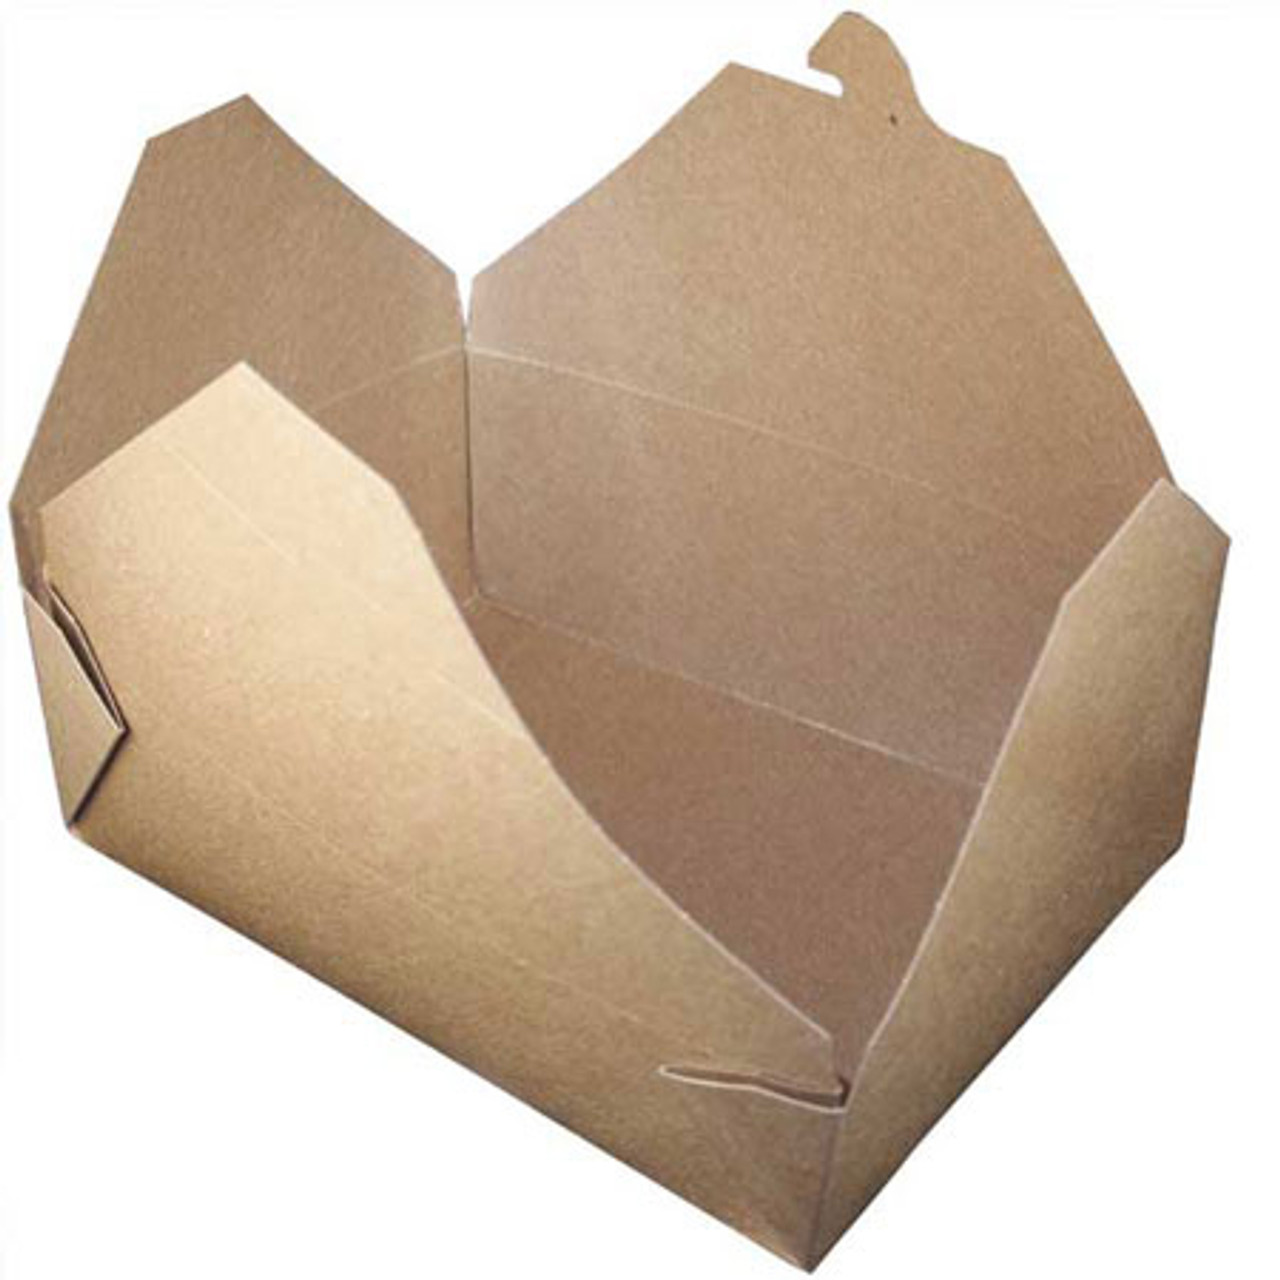 Brown Kraft Take Out Food Container #3